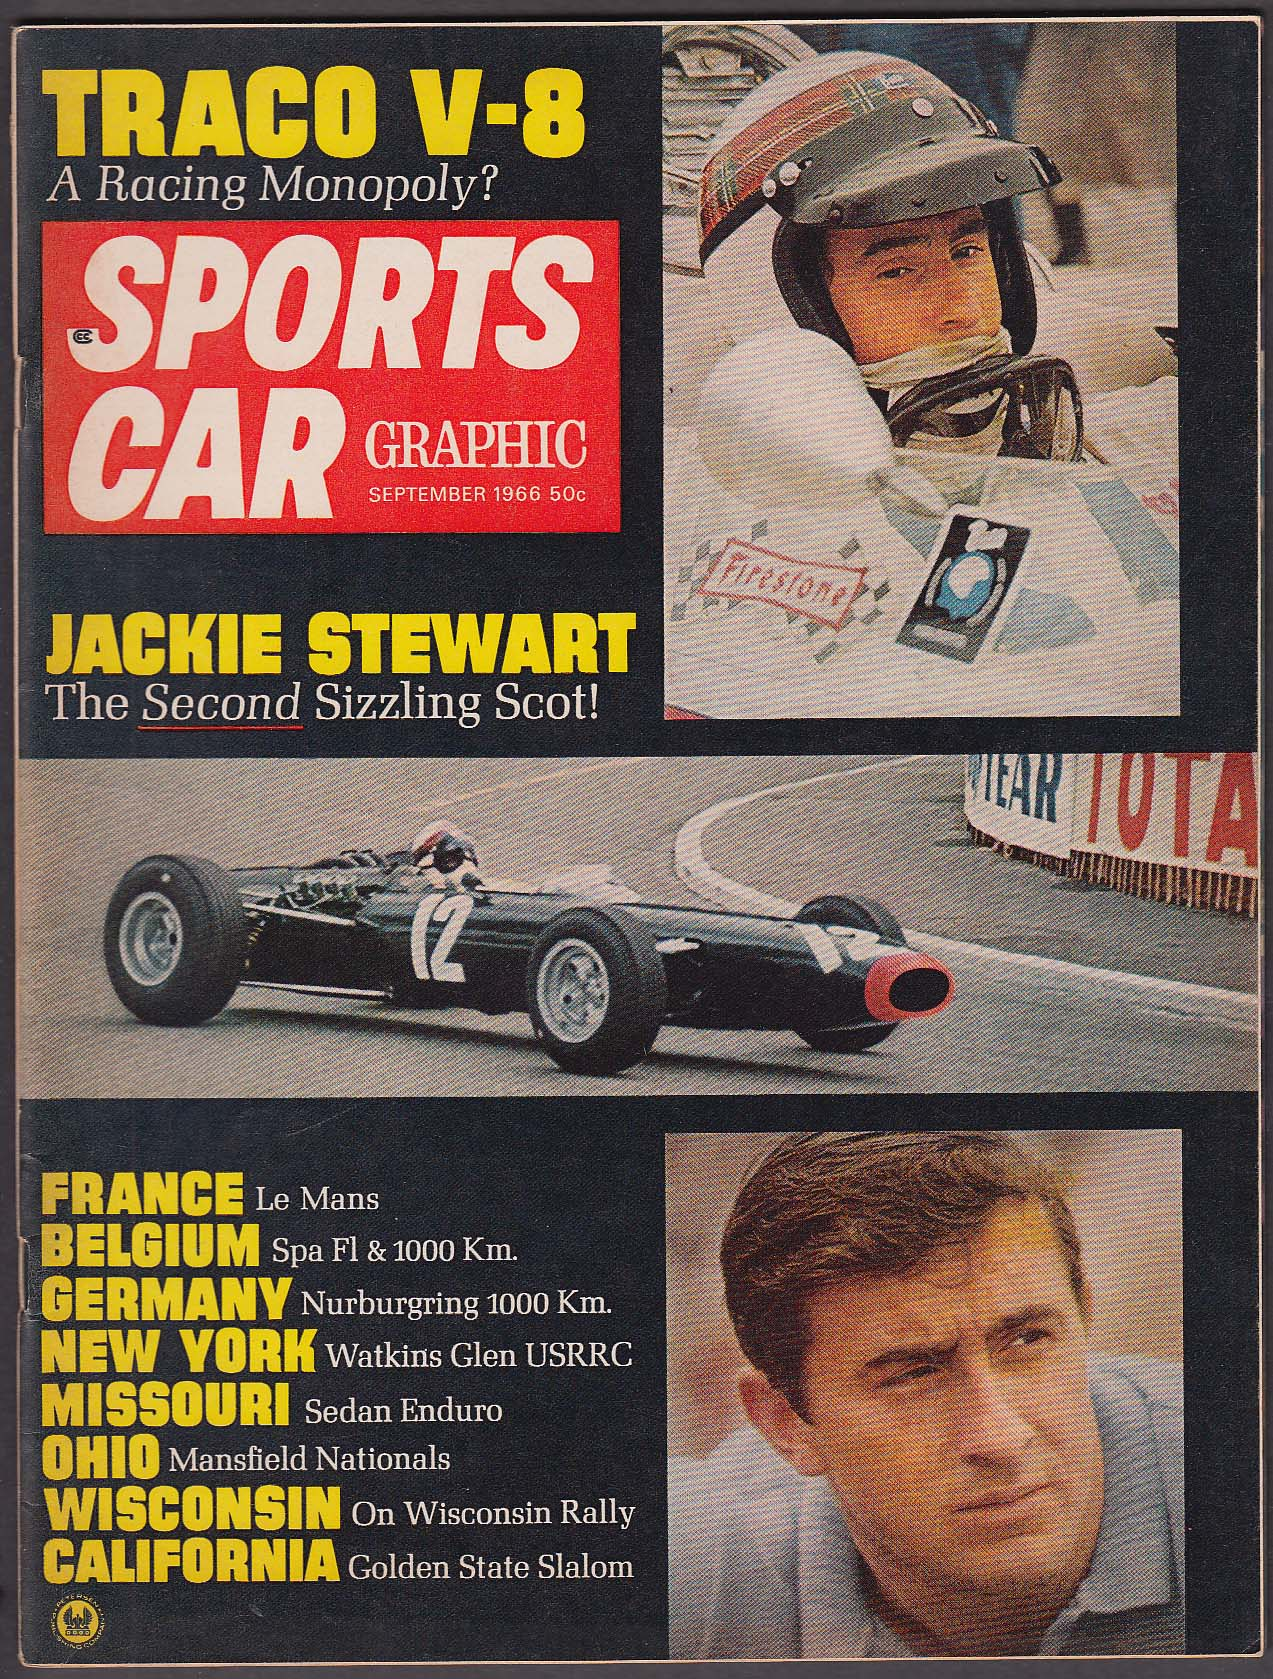 SPORTS CAR GRAPHIC Alfa Romeo 1600 Spider road test Jackie Stewart ++ 9 1966